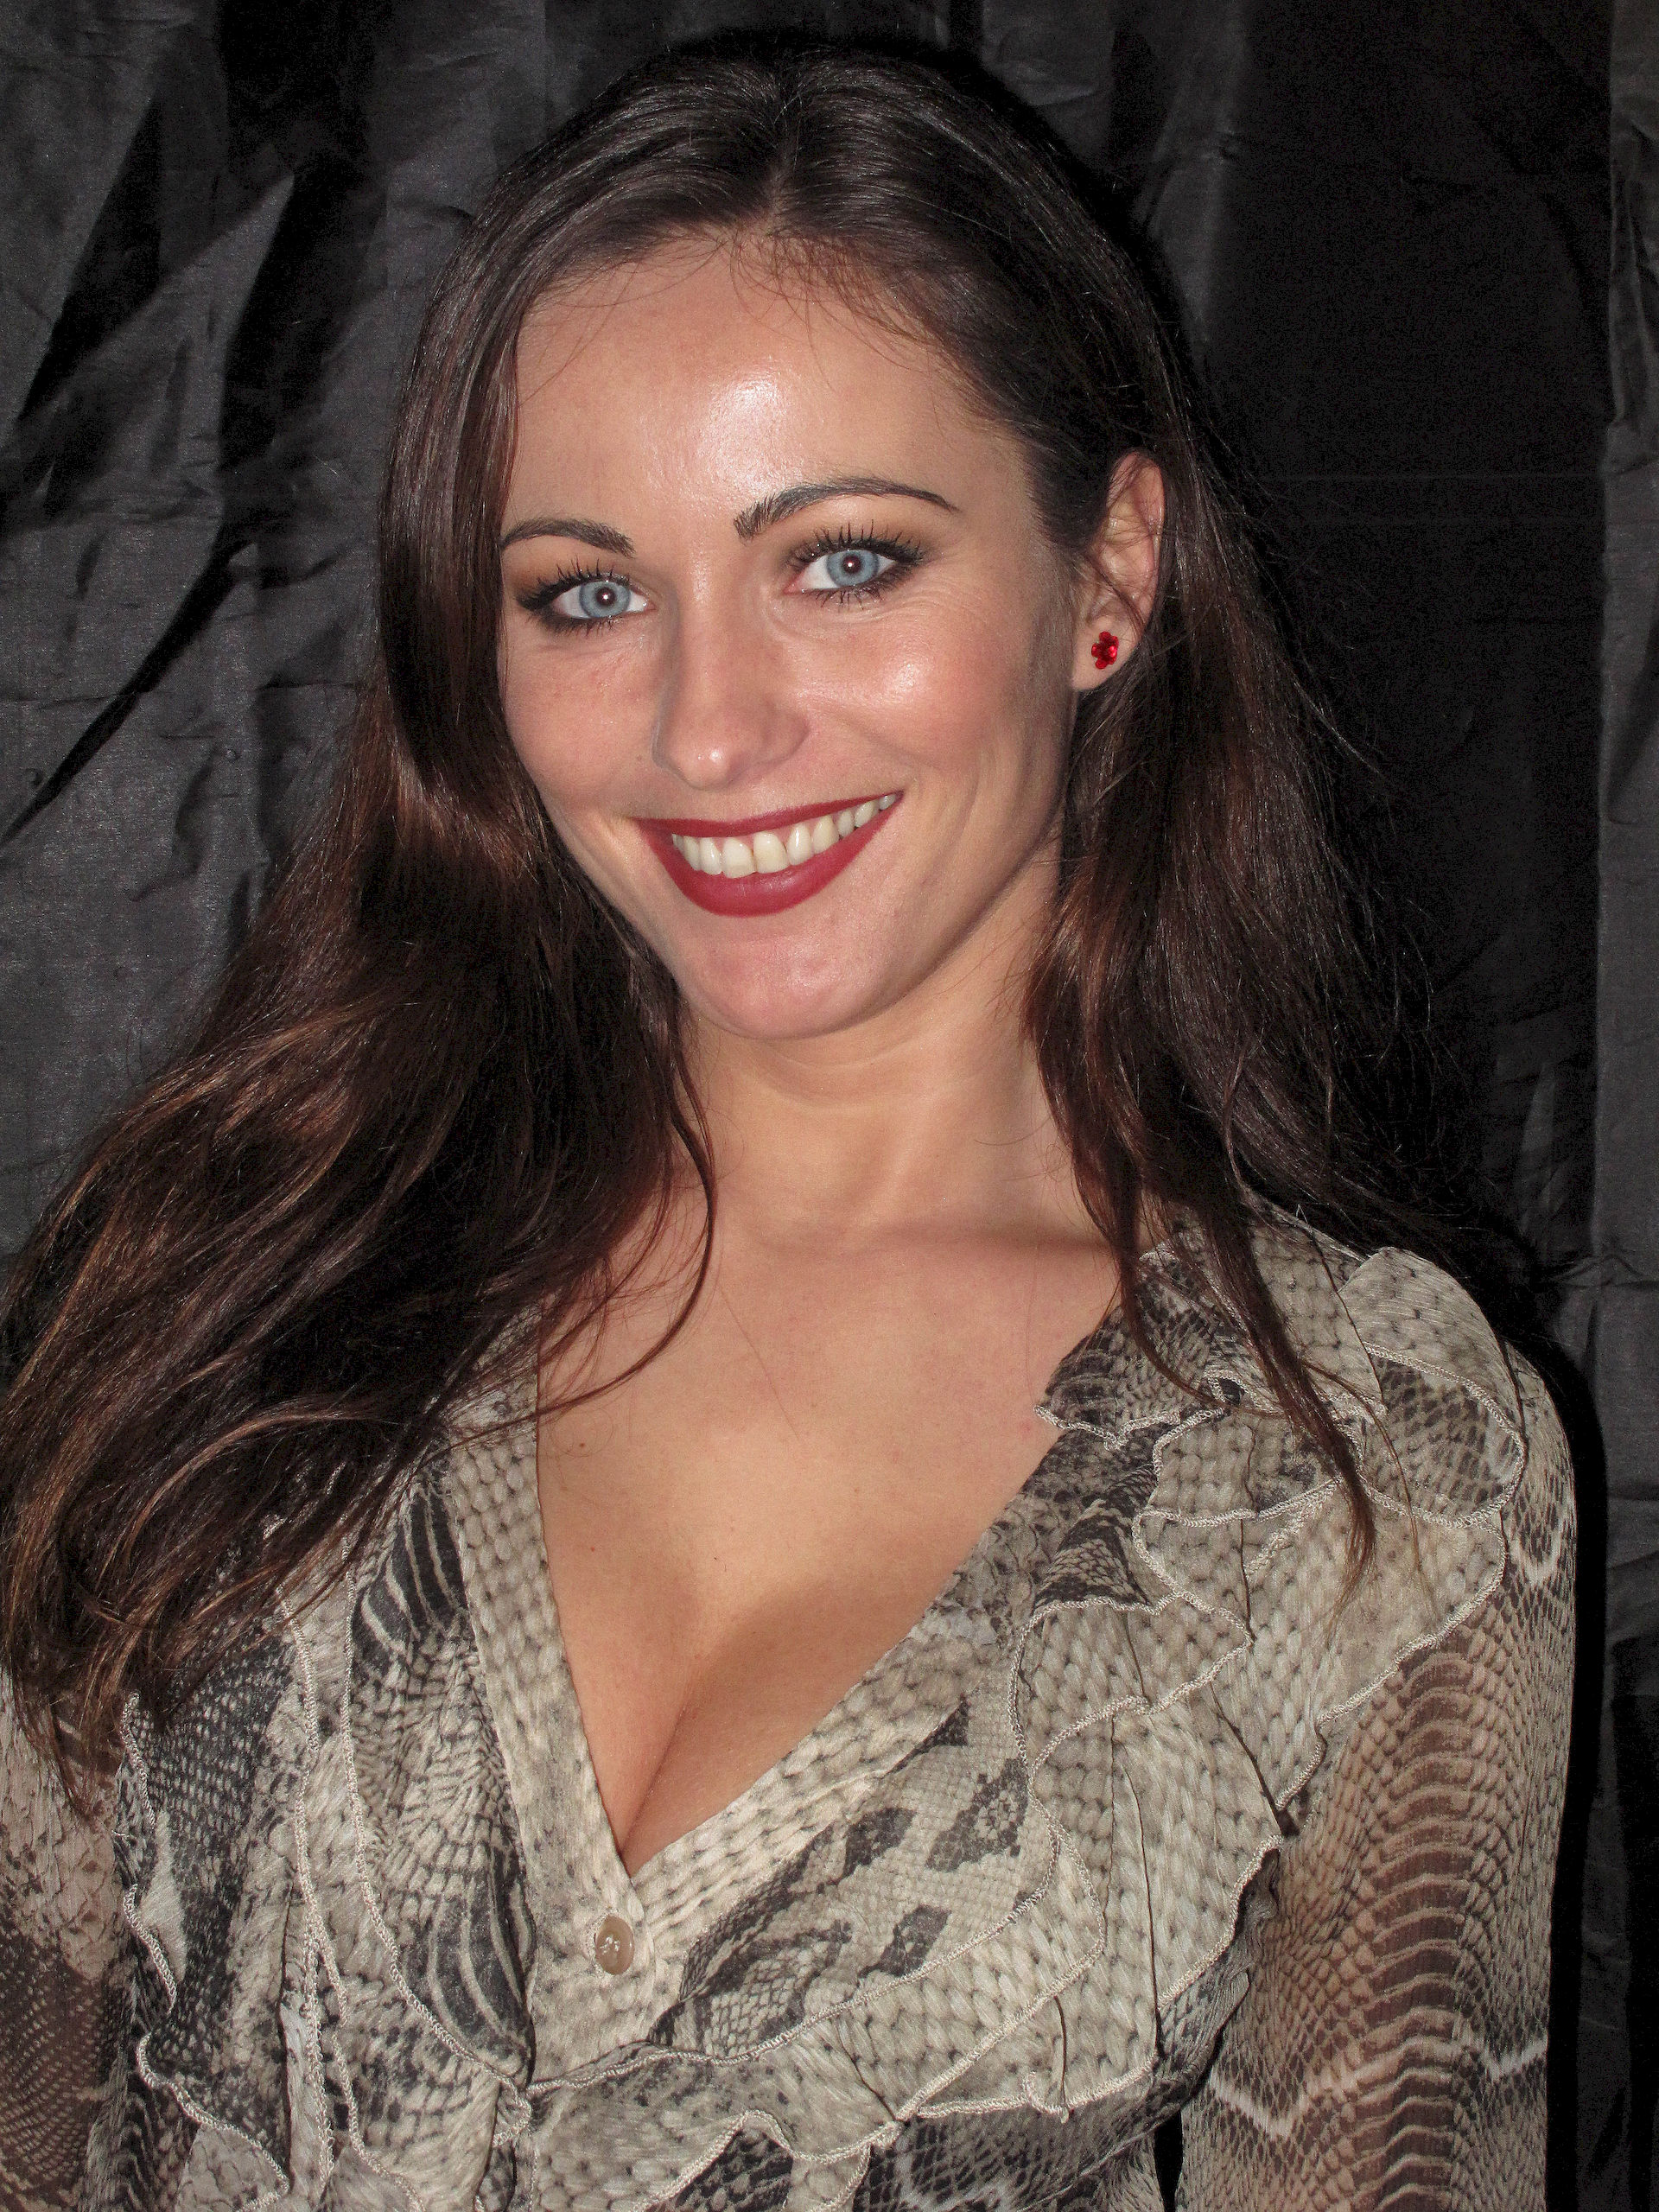 Photo of Kyla Cole: Slovak pornographic actress, glamour model, television presenter and Penthouse Pet